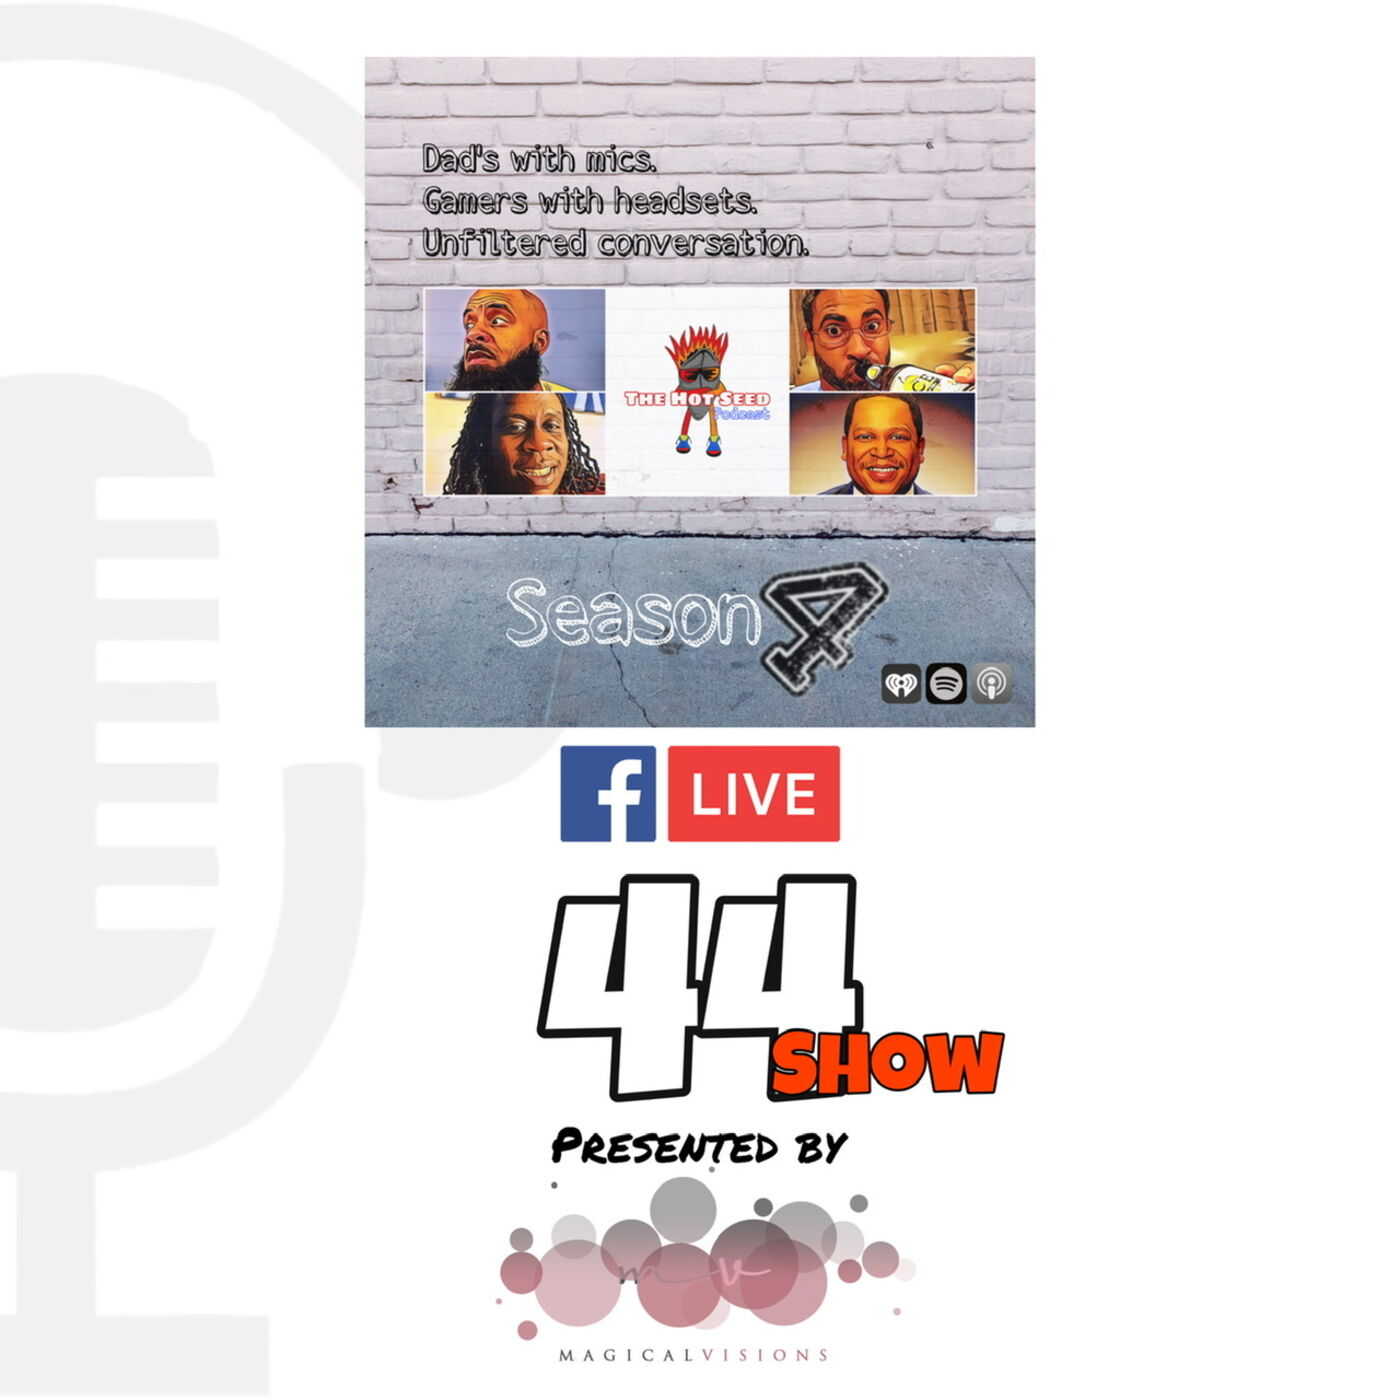 Ep.44 Facebook Live Stream presented by Magical Visions LLC